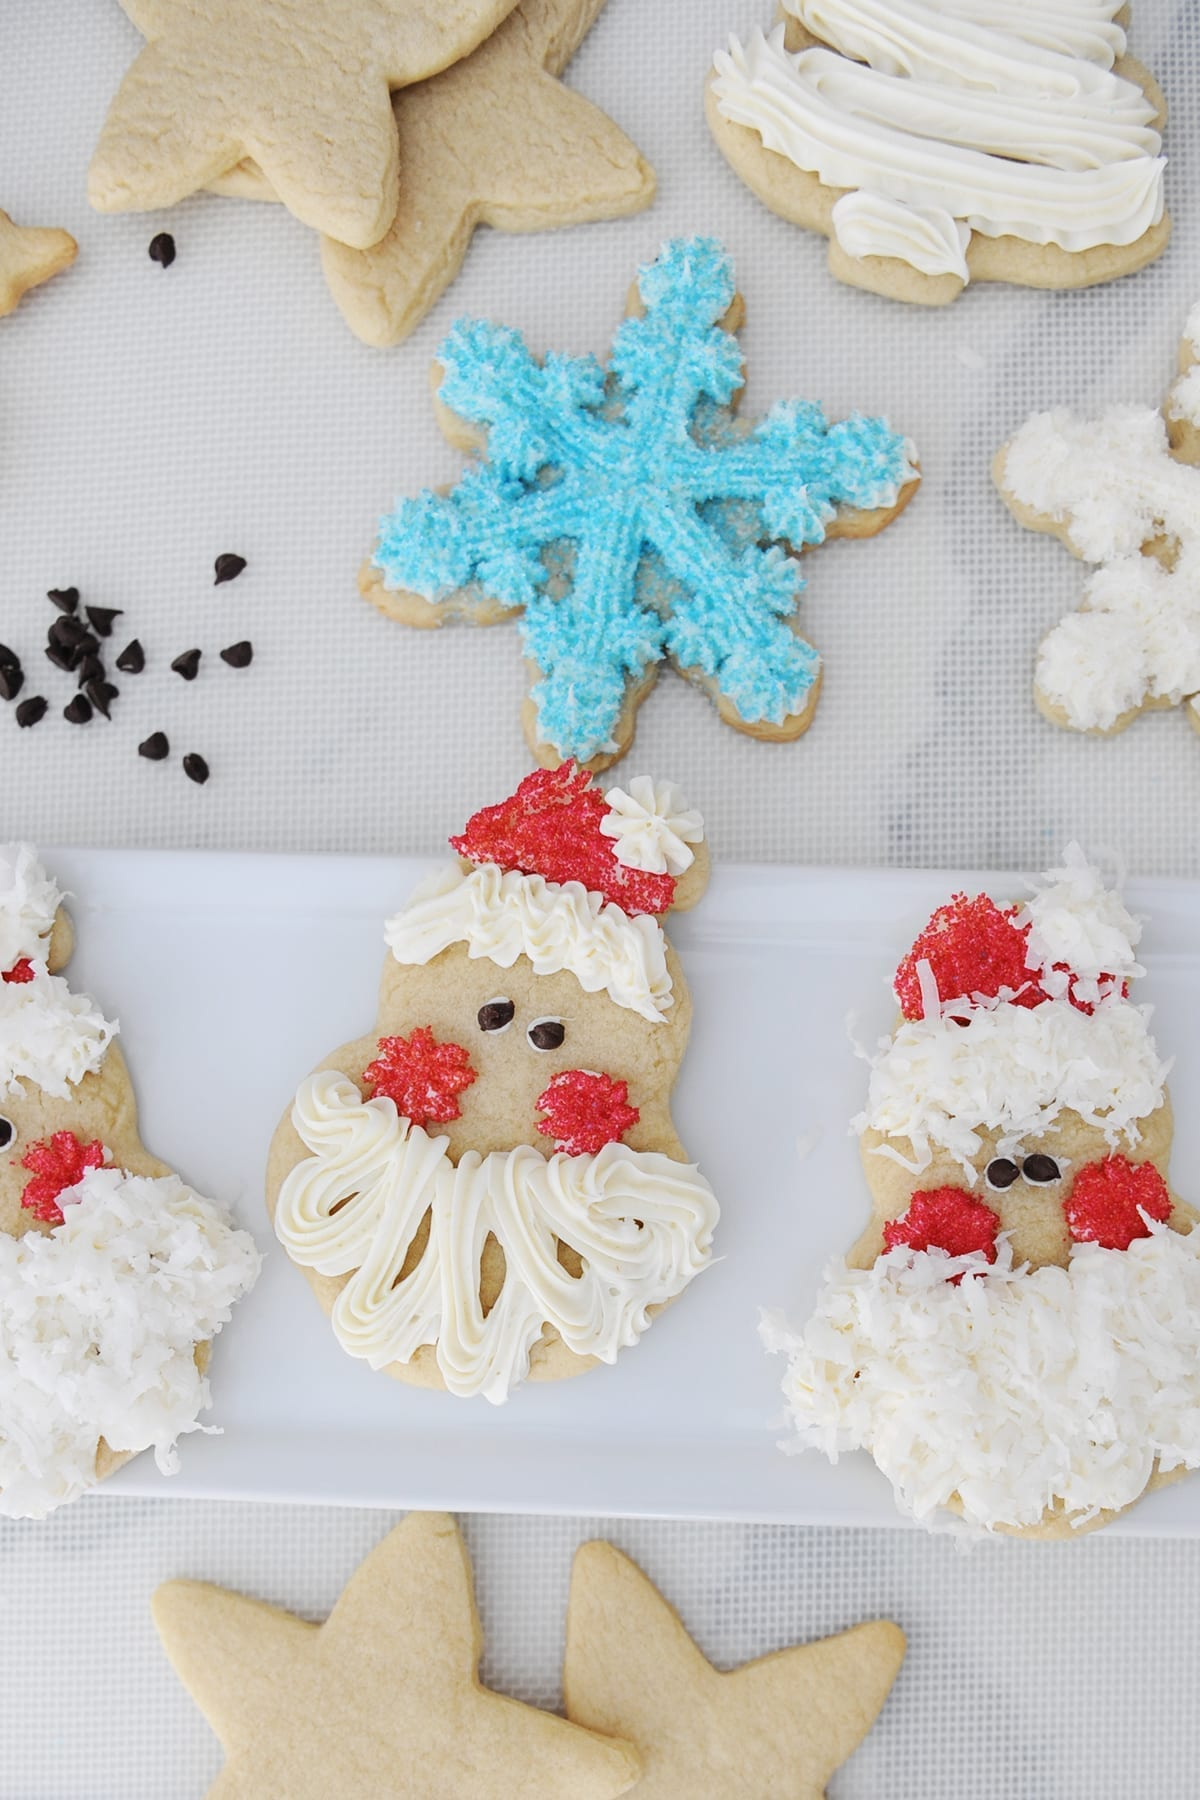 How To Decorate Easy Santa Face Christmas Cookies